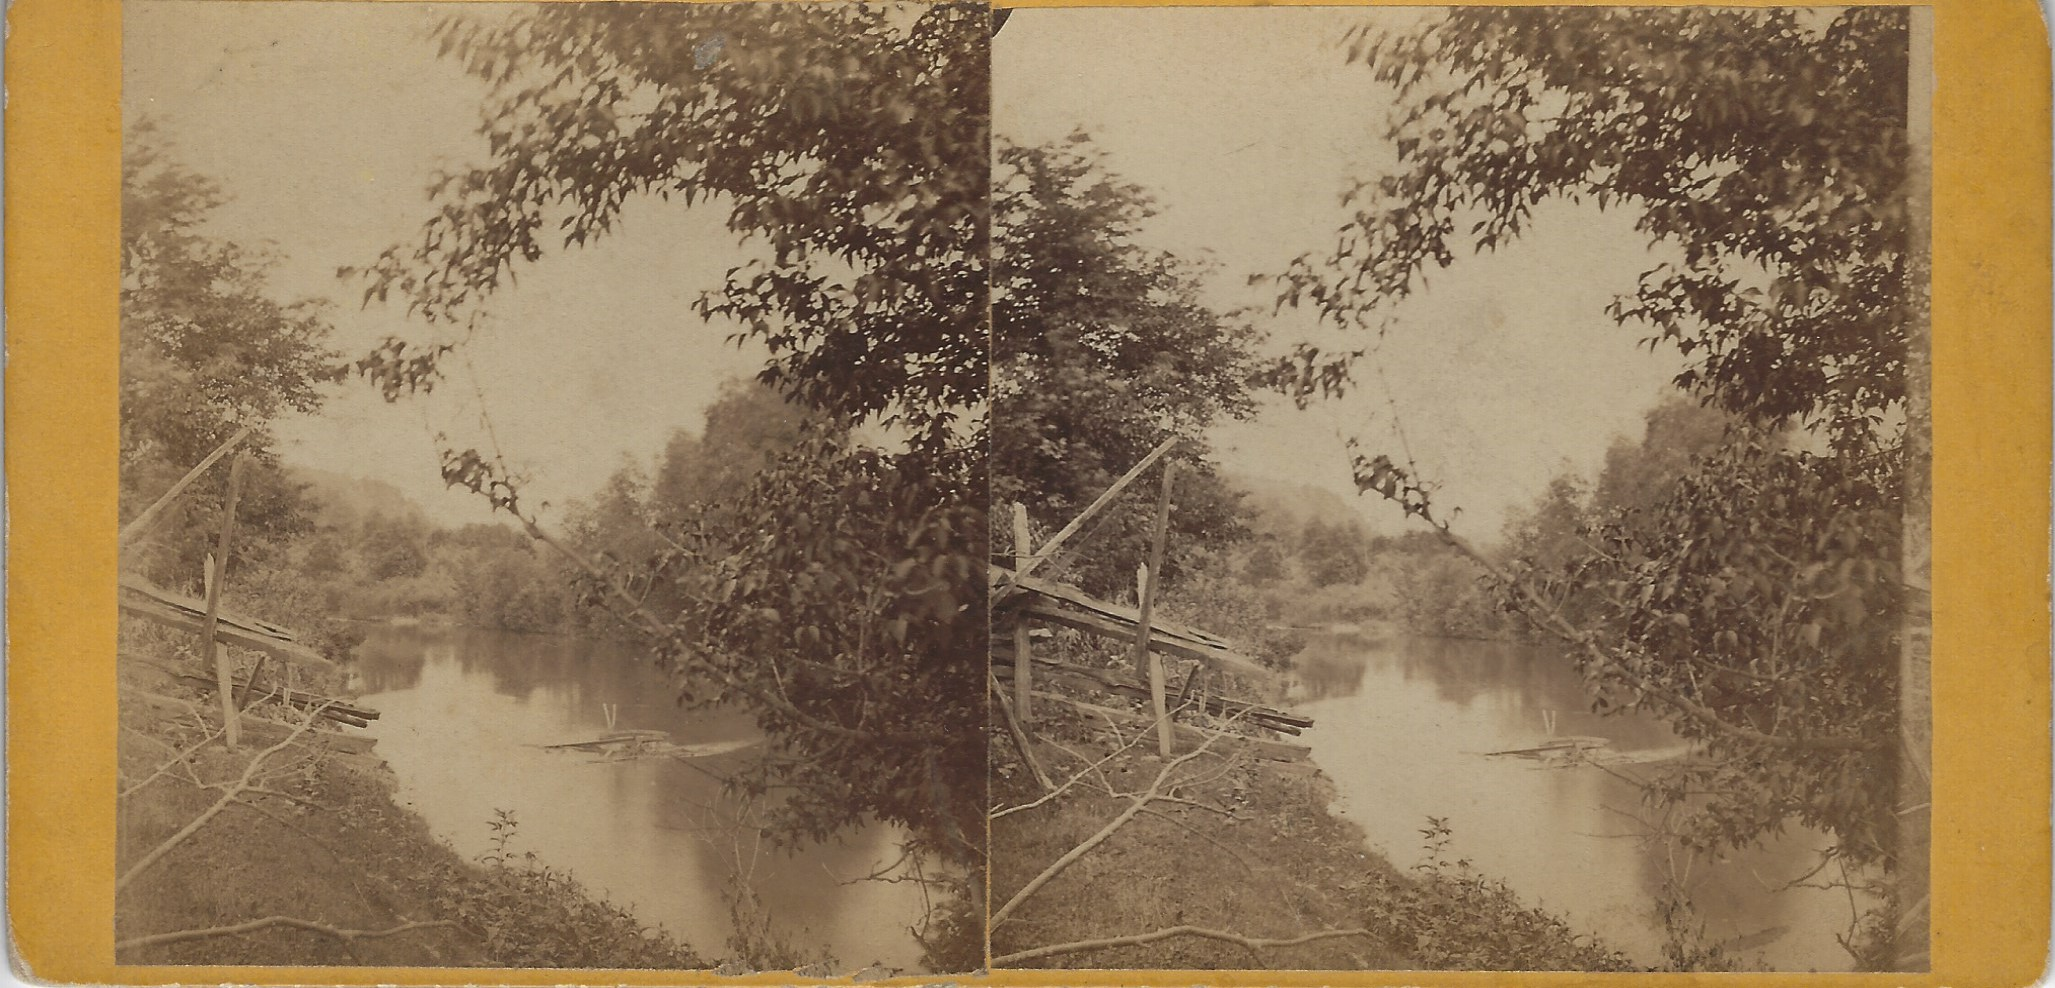 LJTP 100.275 - S. Root - Unknown River - c1875